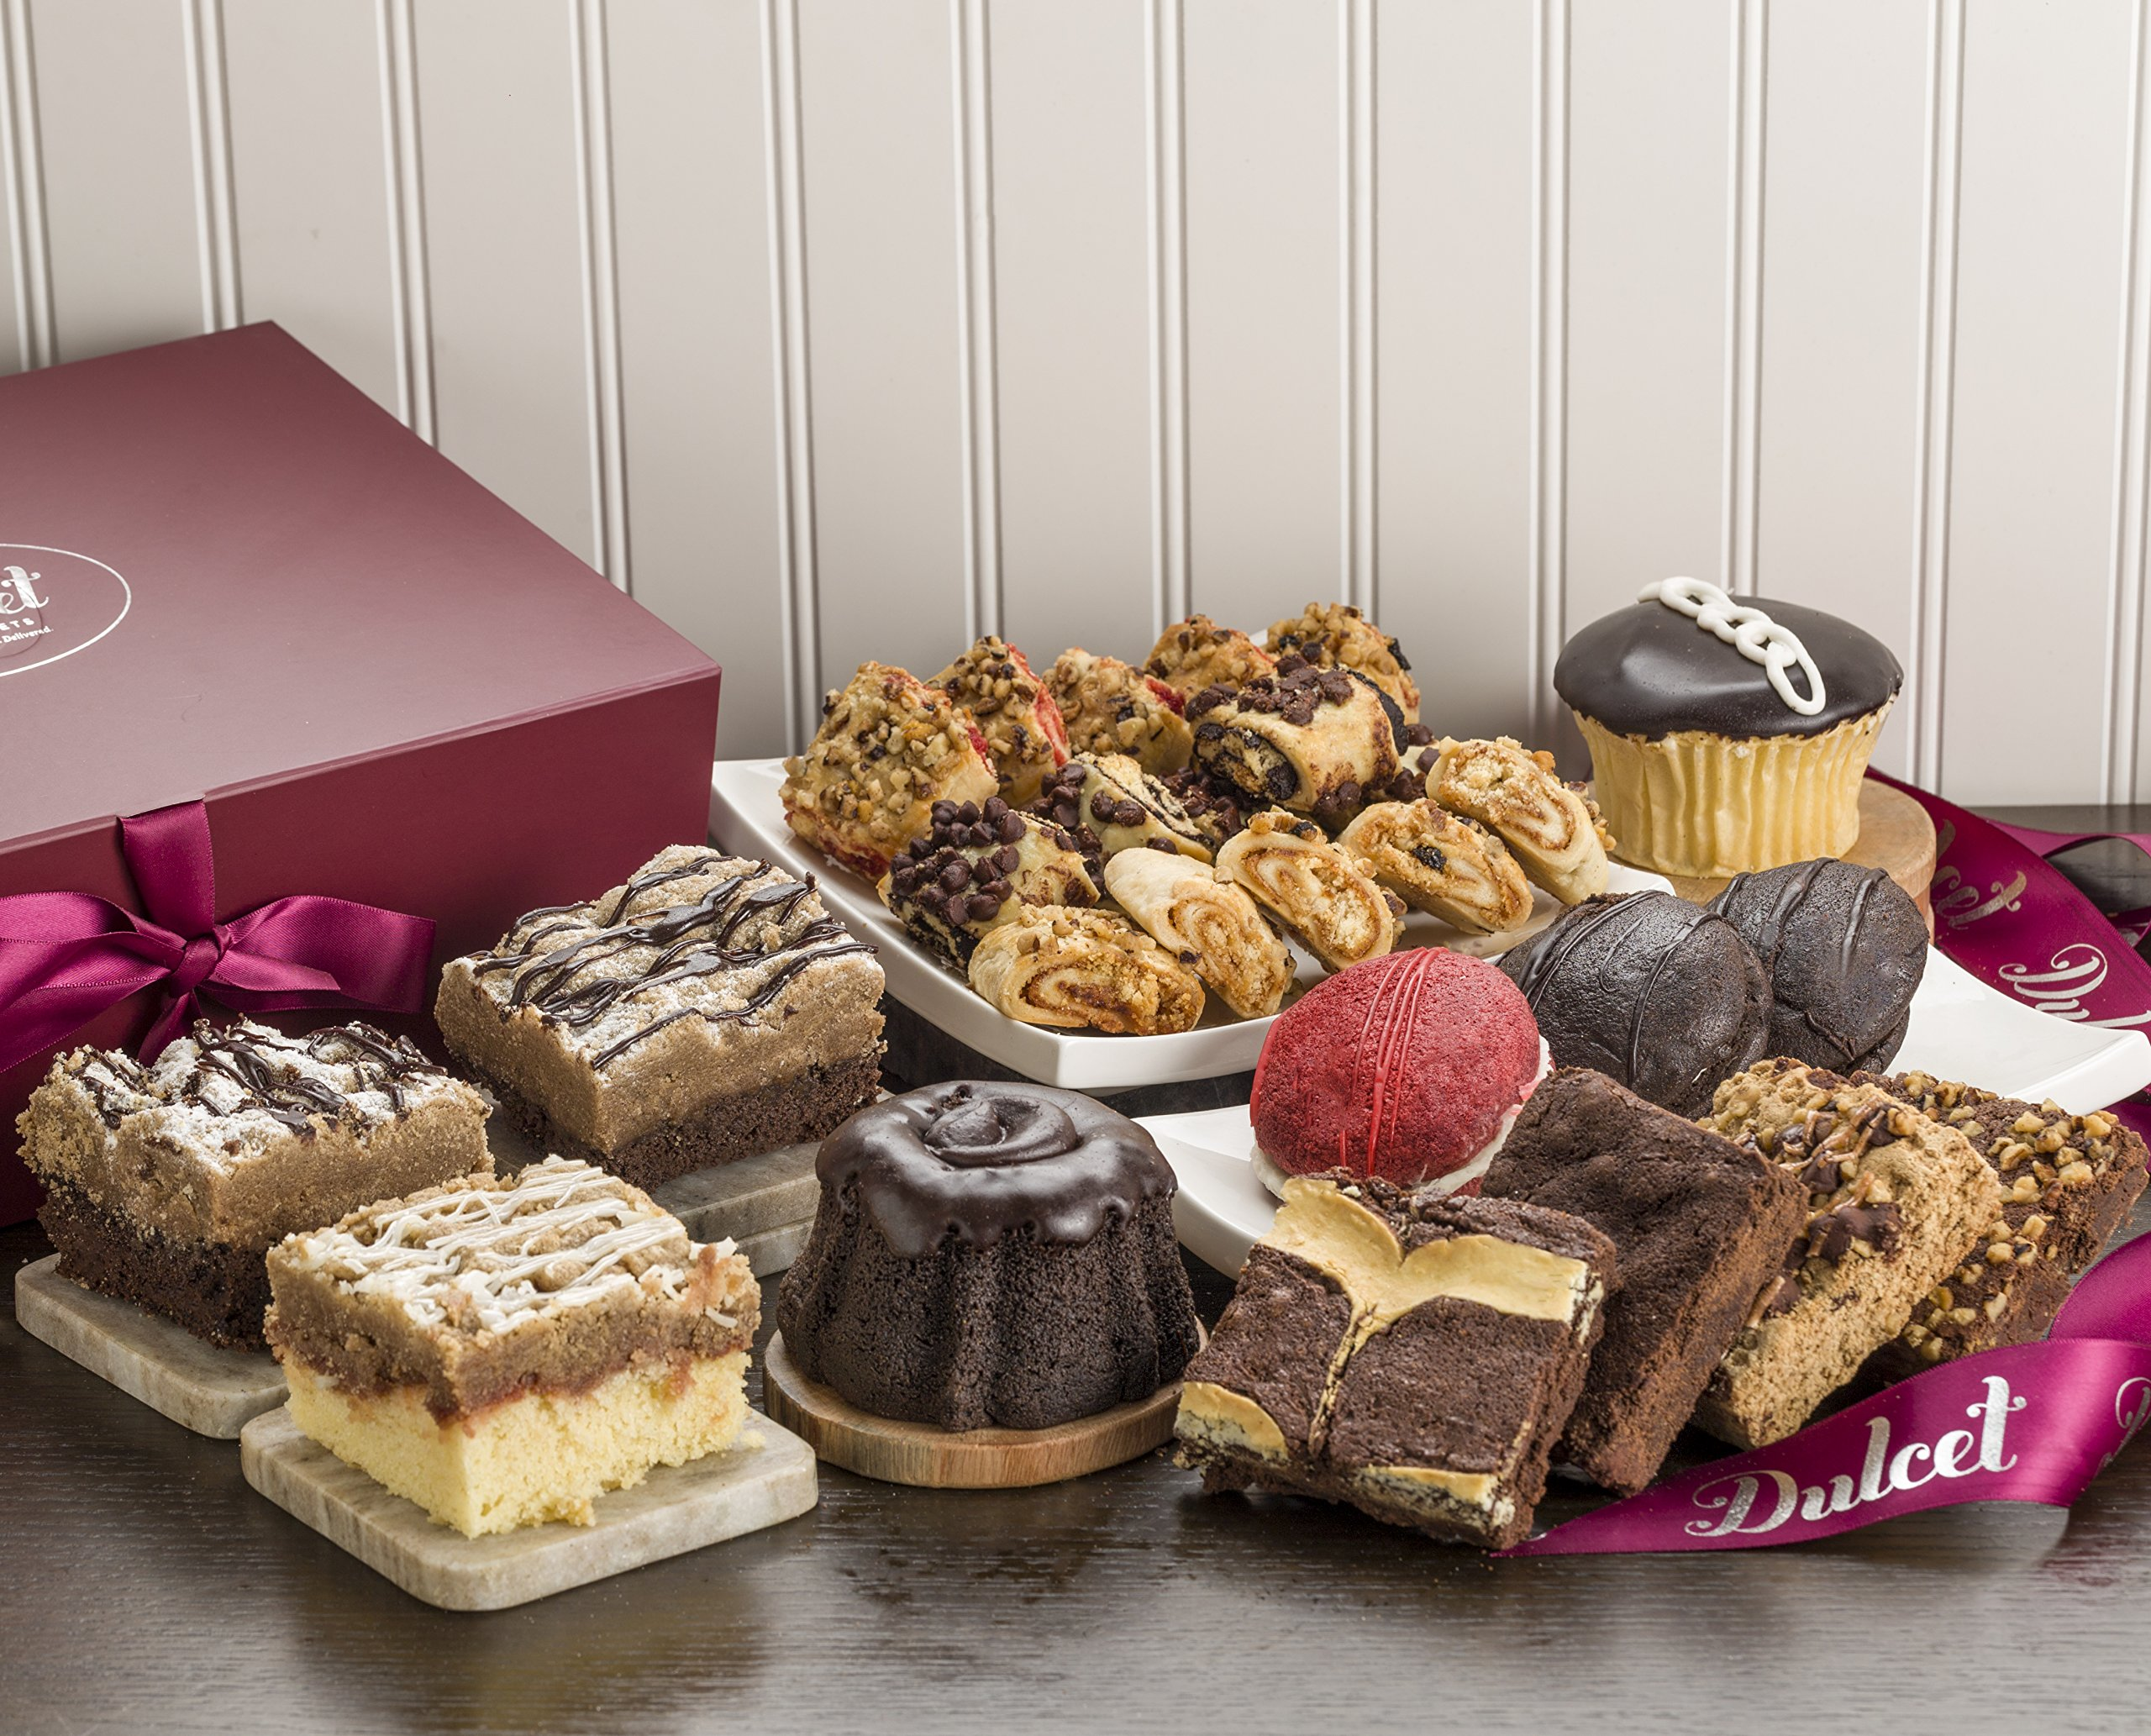 Dulcet Party Gift Box – Includes an Assortment of Individually Wrapped Pastries in a Variety of Flavors. Elegant Gift Box. Uniquely Tasty Gift Idea